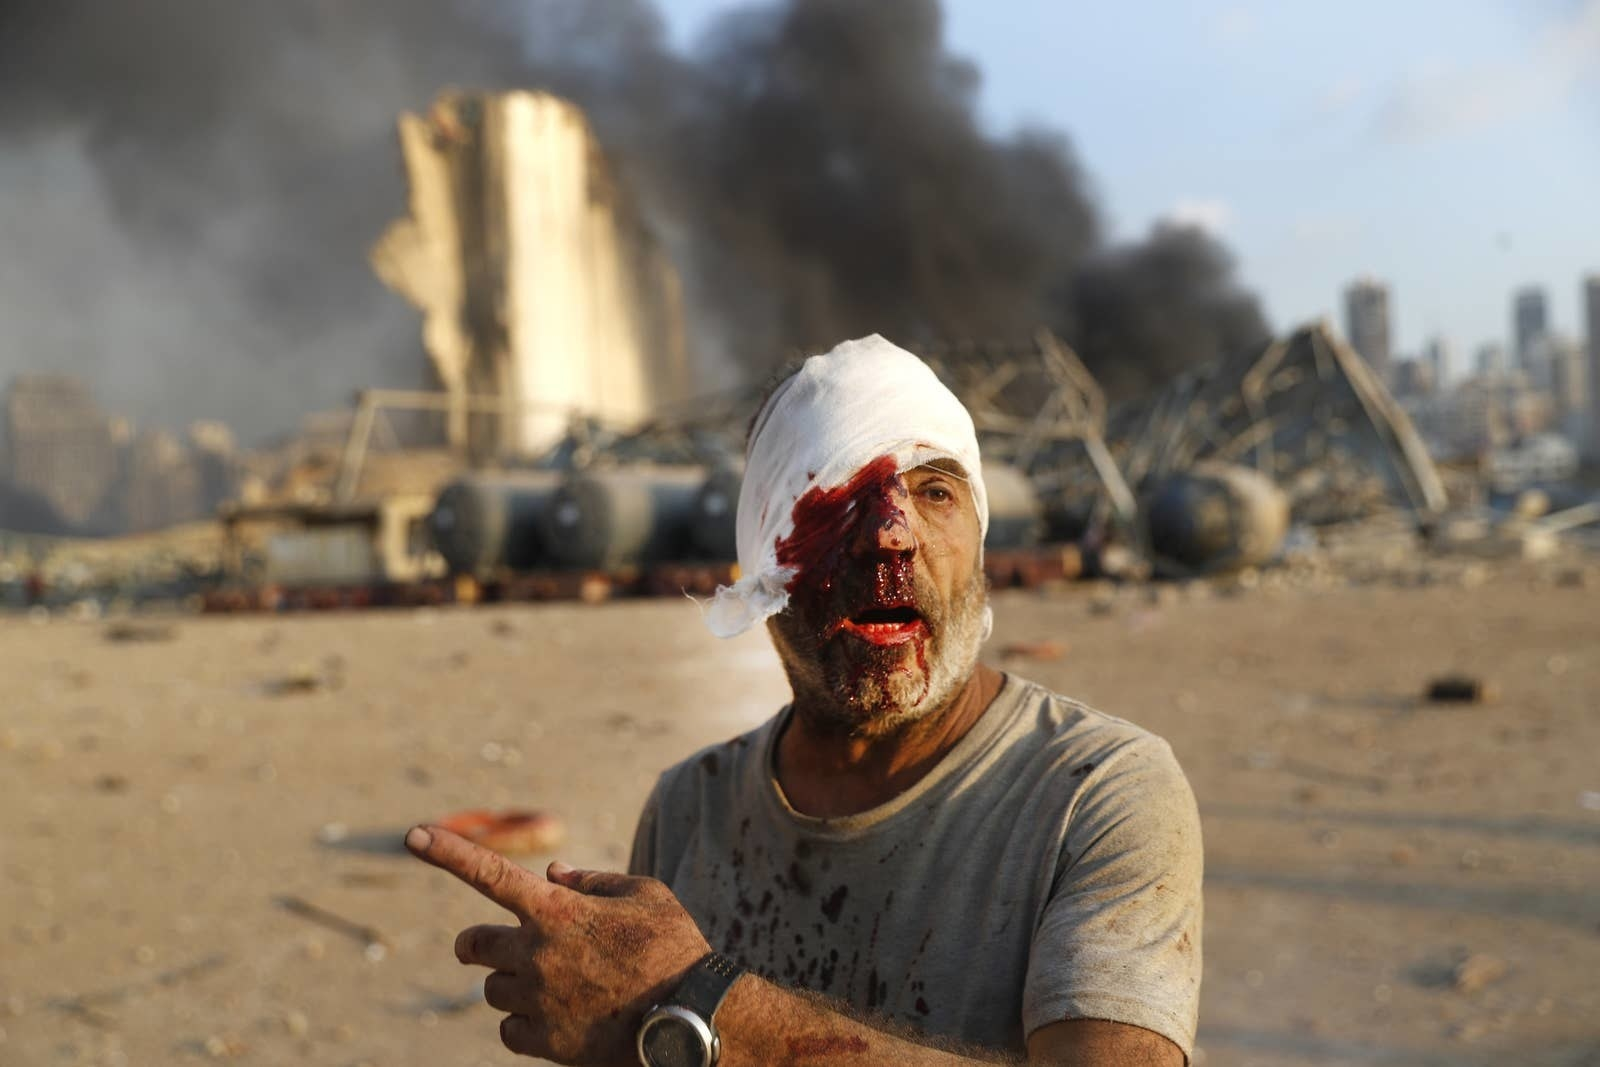 A man with one bloody bandaged eye points with smoke and wreckage behind him